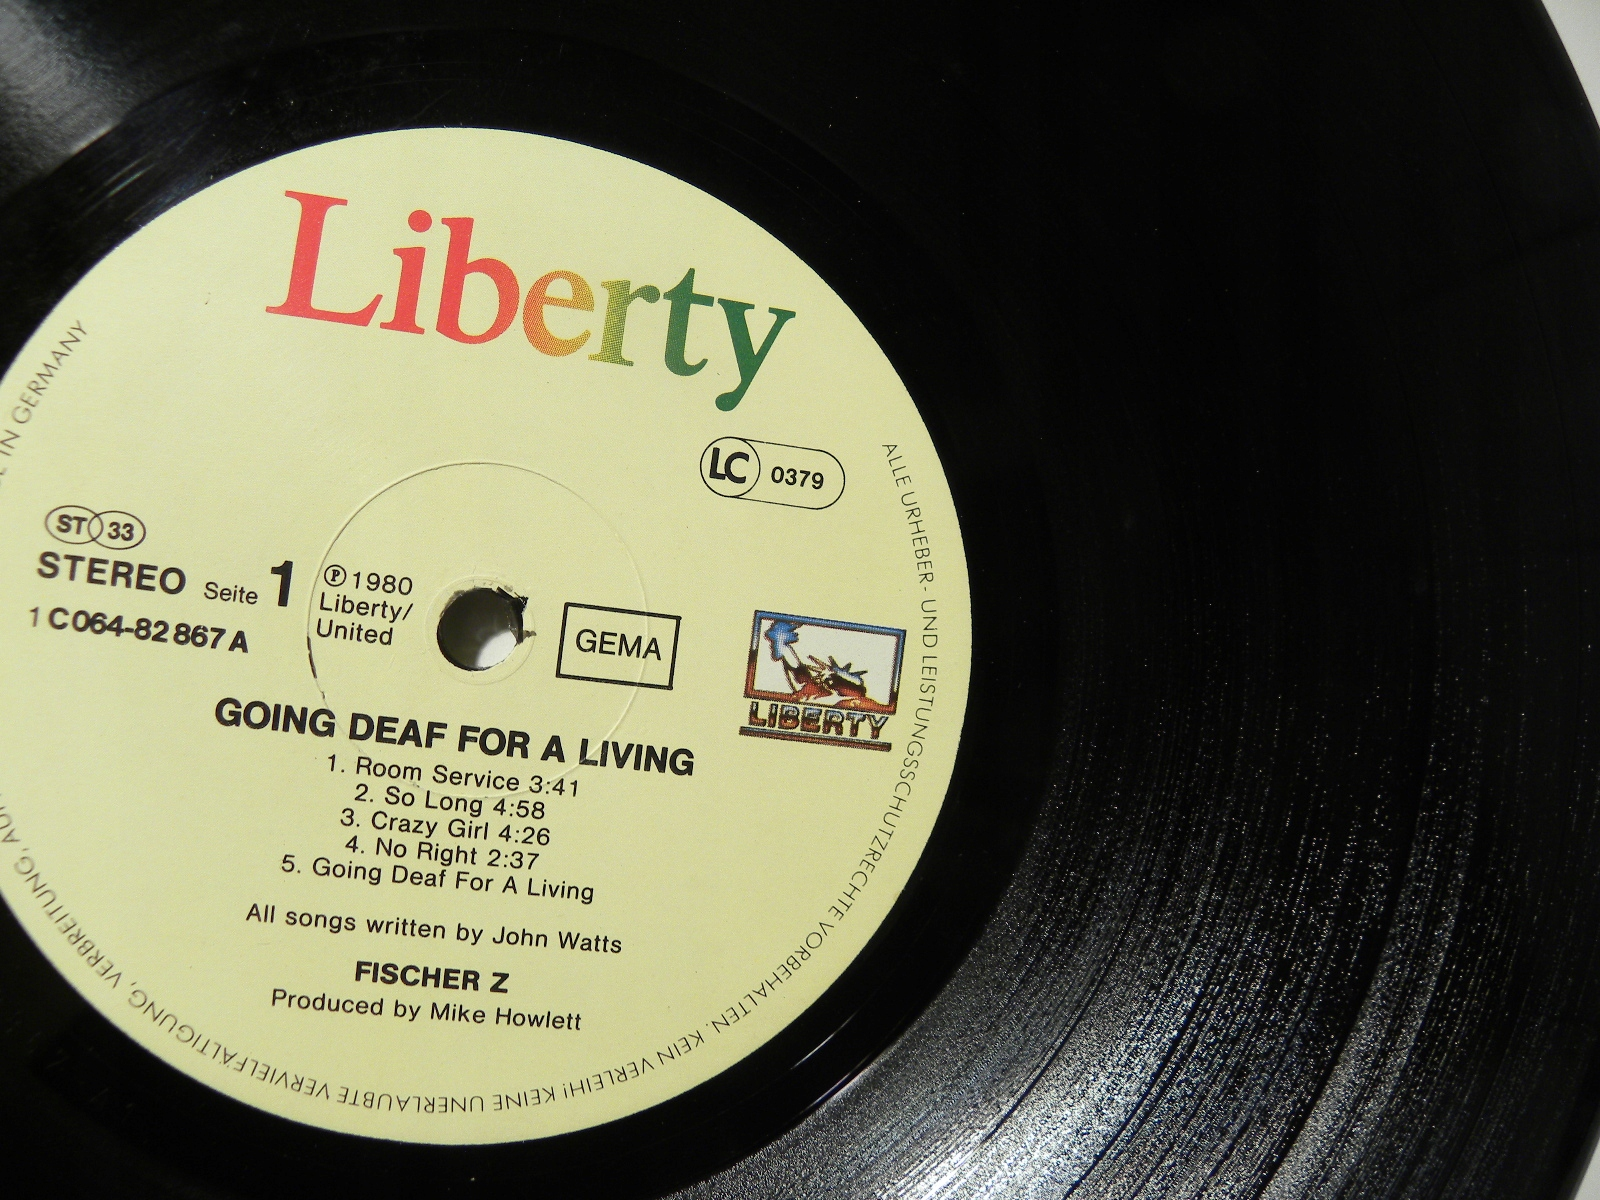 LP FISCHER Z GOING DEAF FOR A LIVING LIBERTY VG-